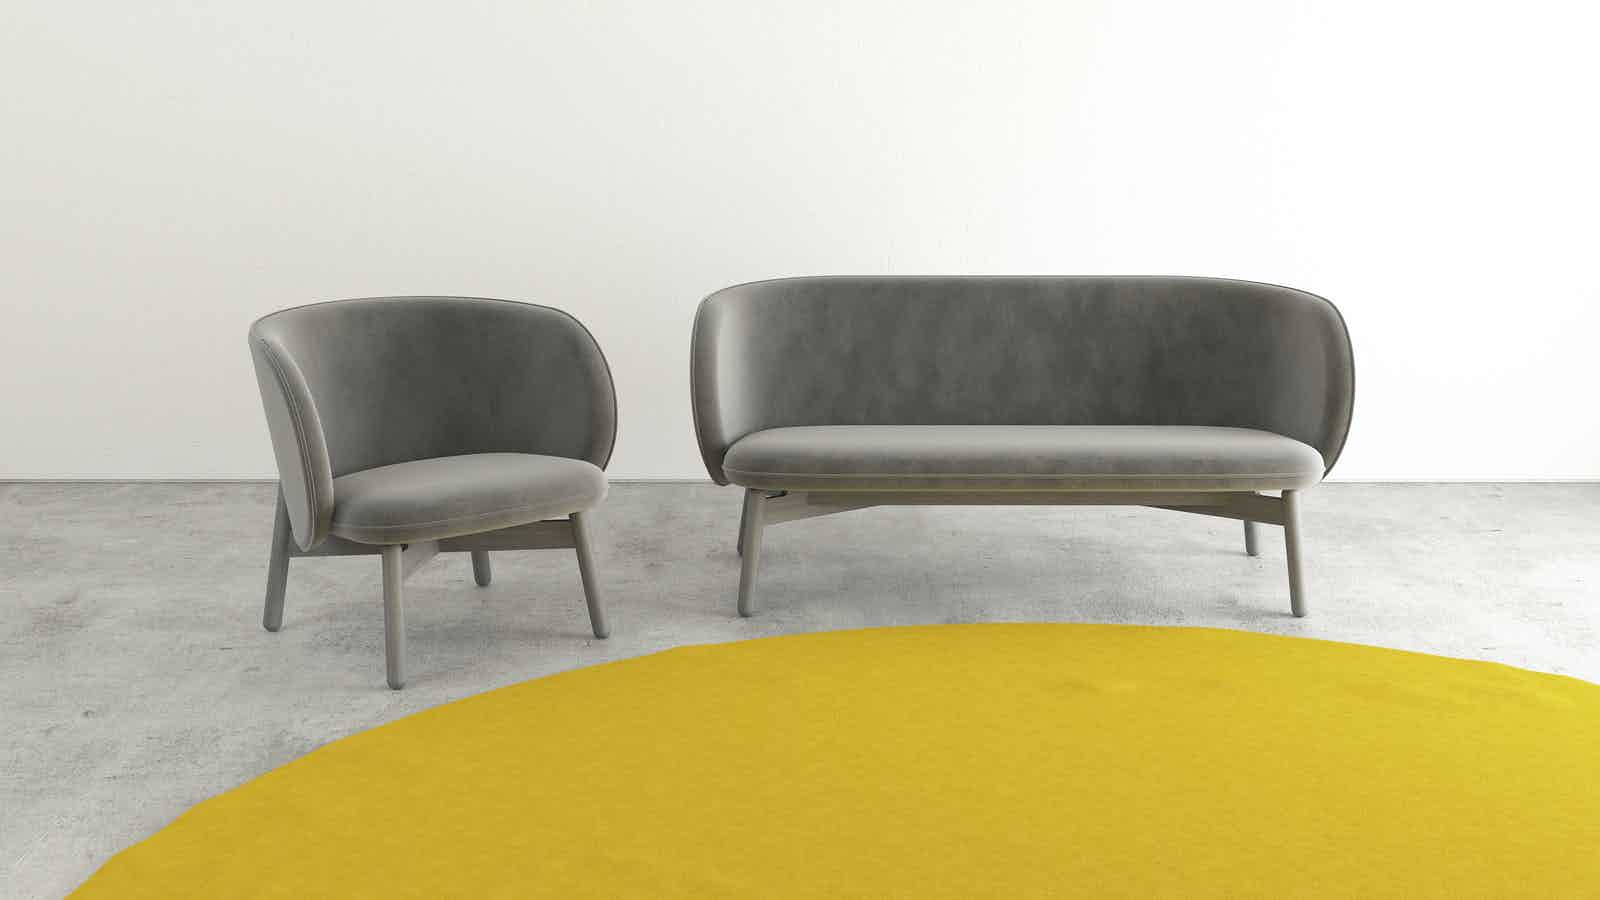 Beech club sofa by dum furniture at haute living